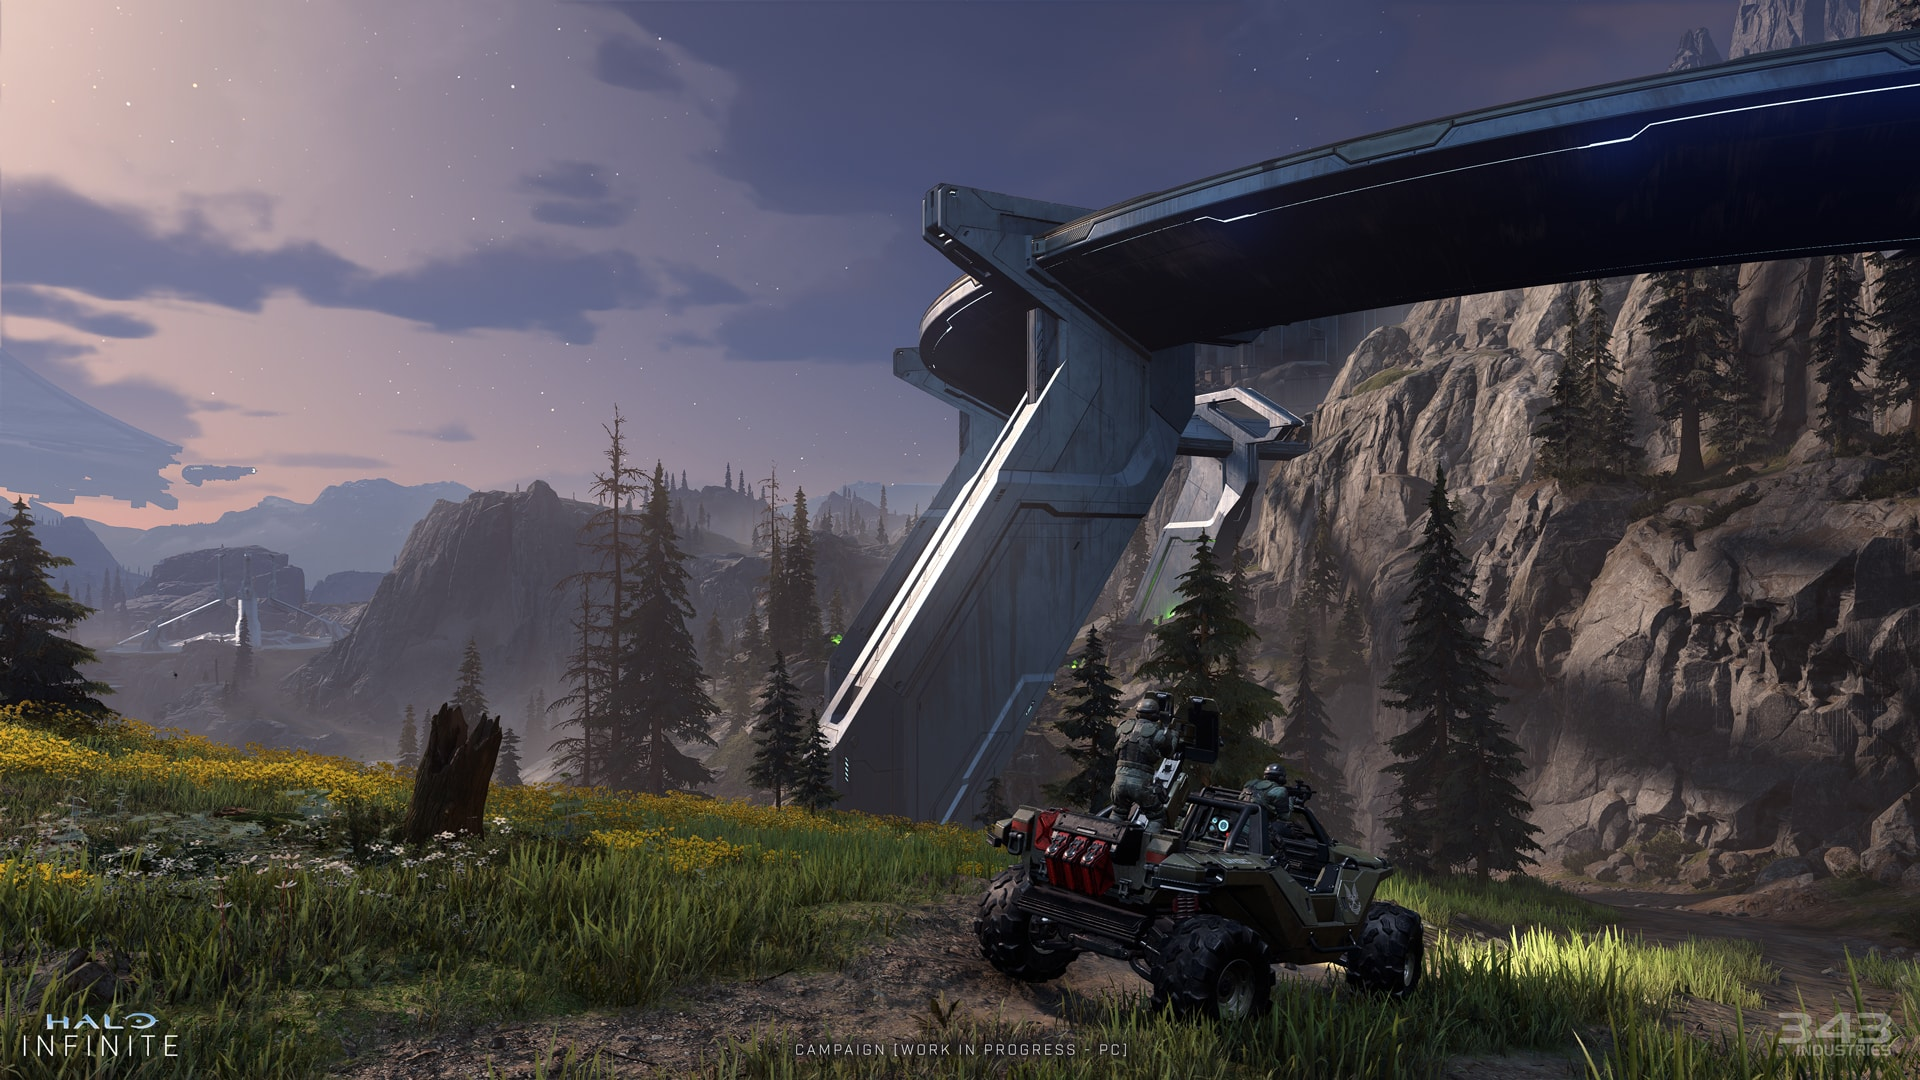 Halo Infinite 343 Industries 343i transparency communication refreshing Xbox Game Studios